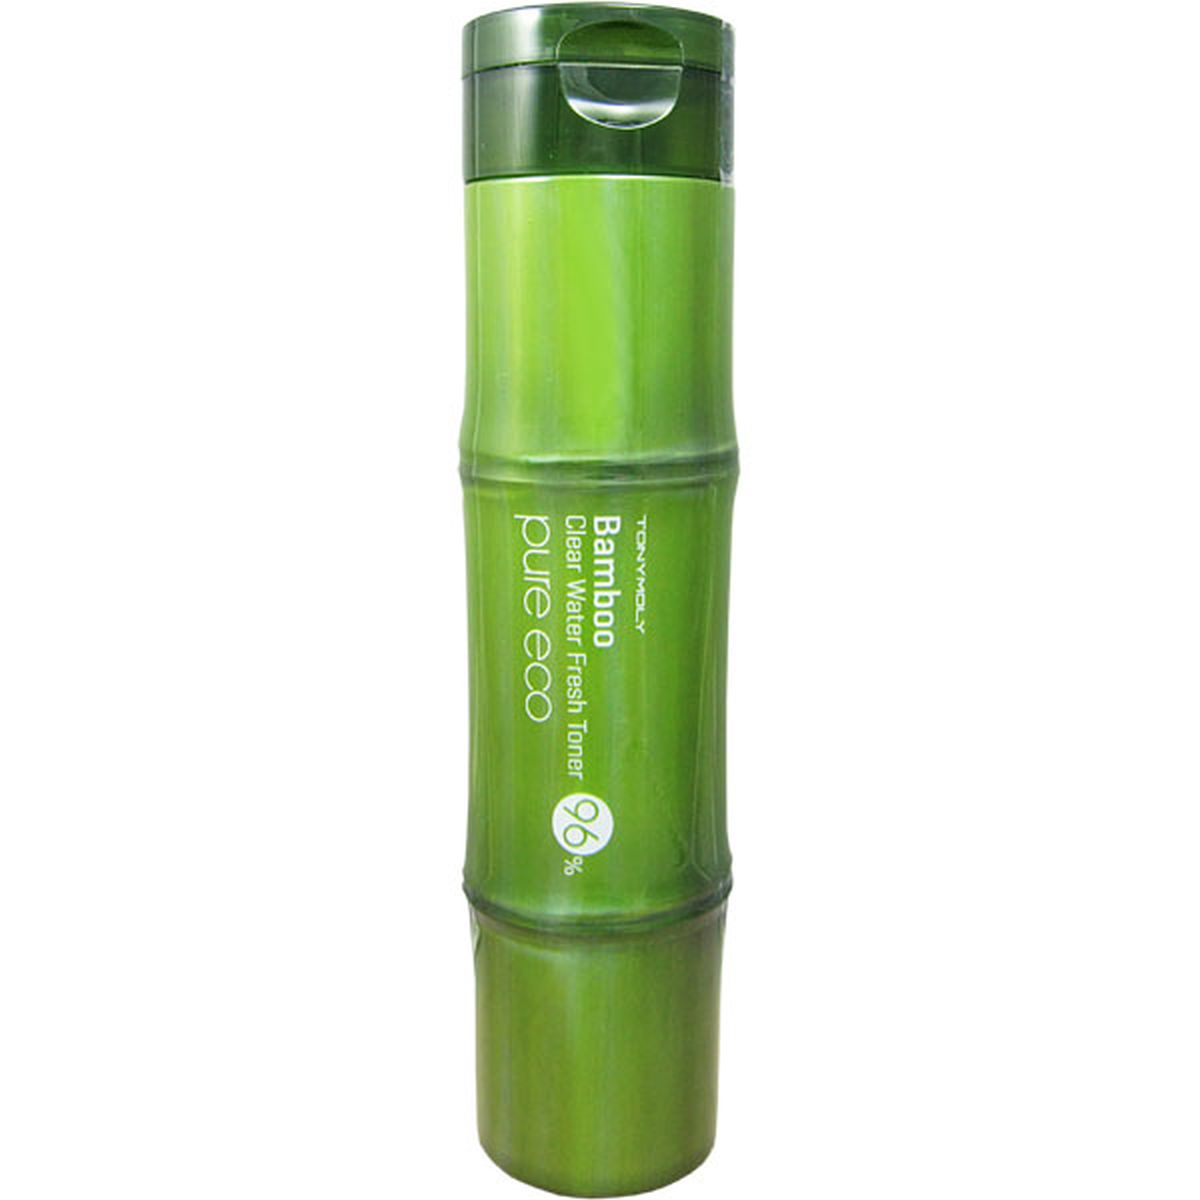 Освежающий тоник для лица TONY MOLY Pure Eco Bamboo Clear Water Fresh Toner - 300 мл